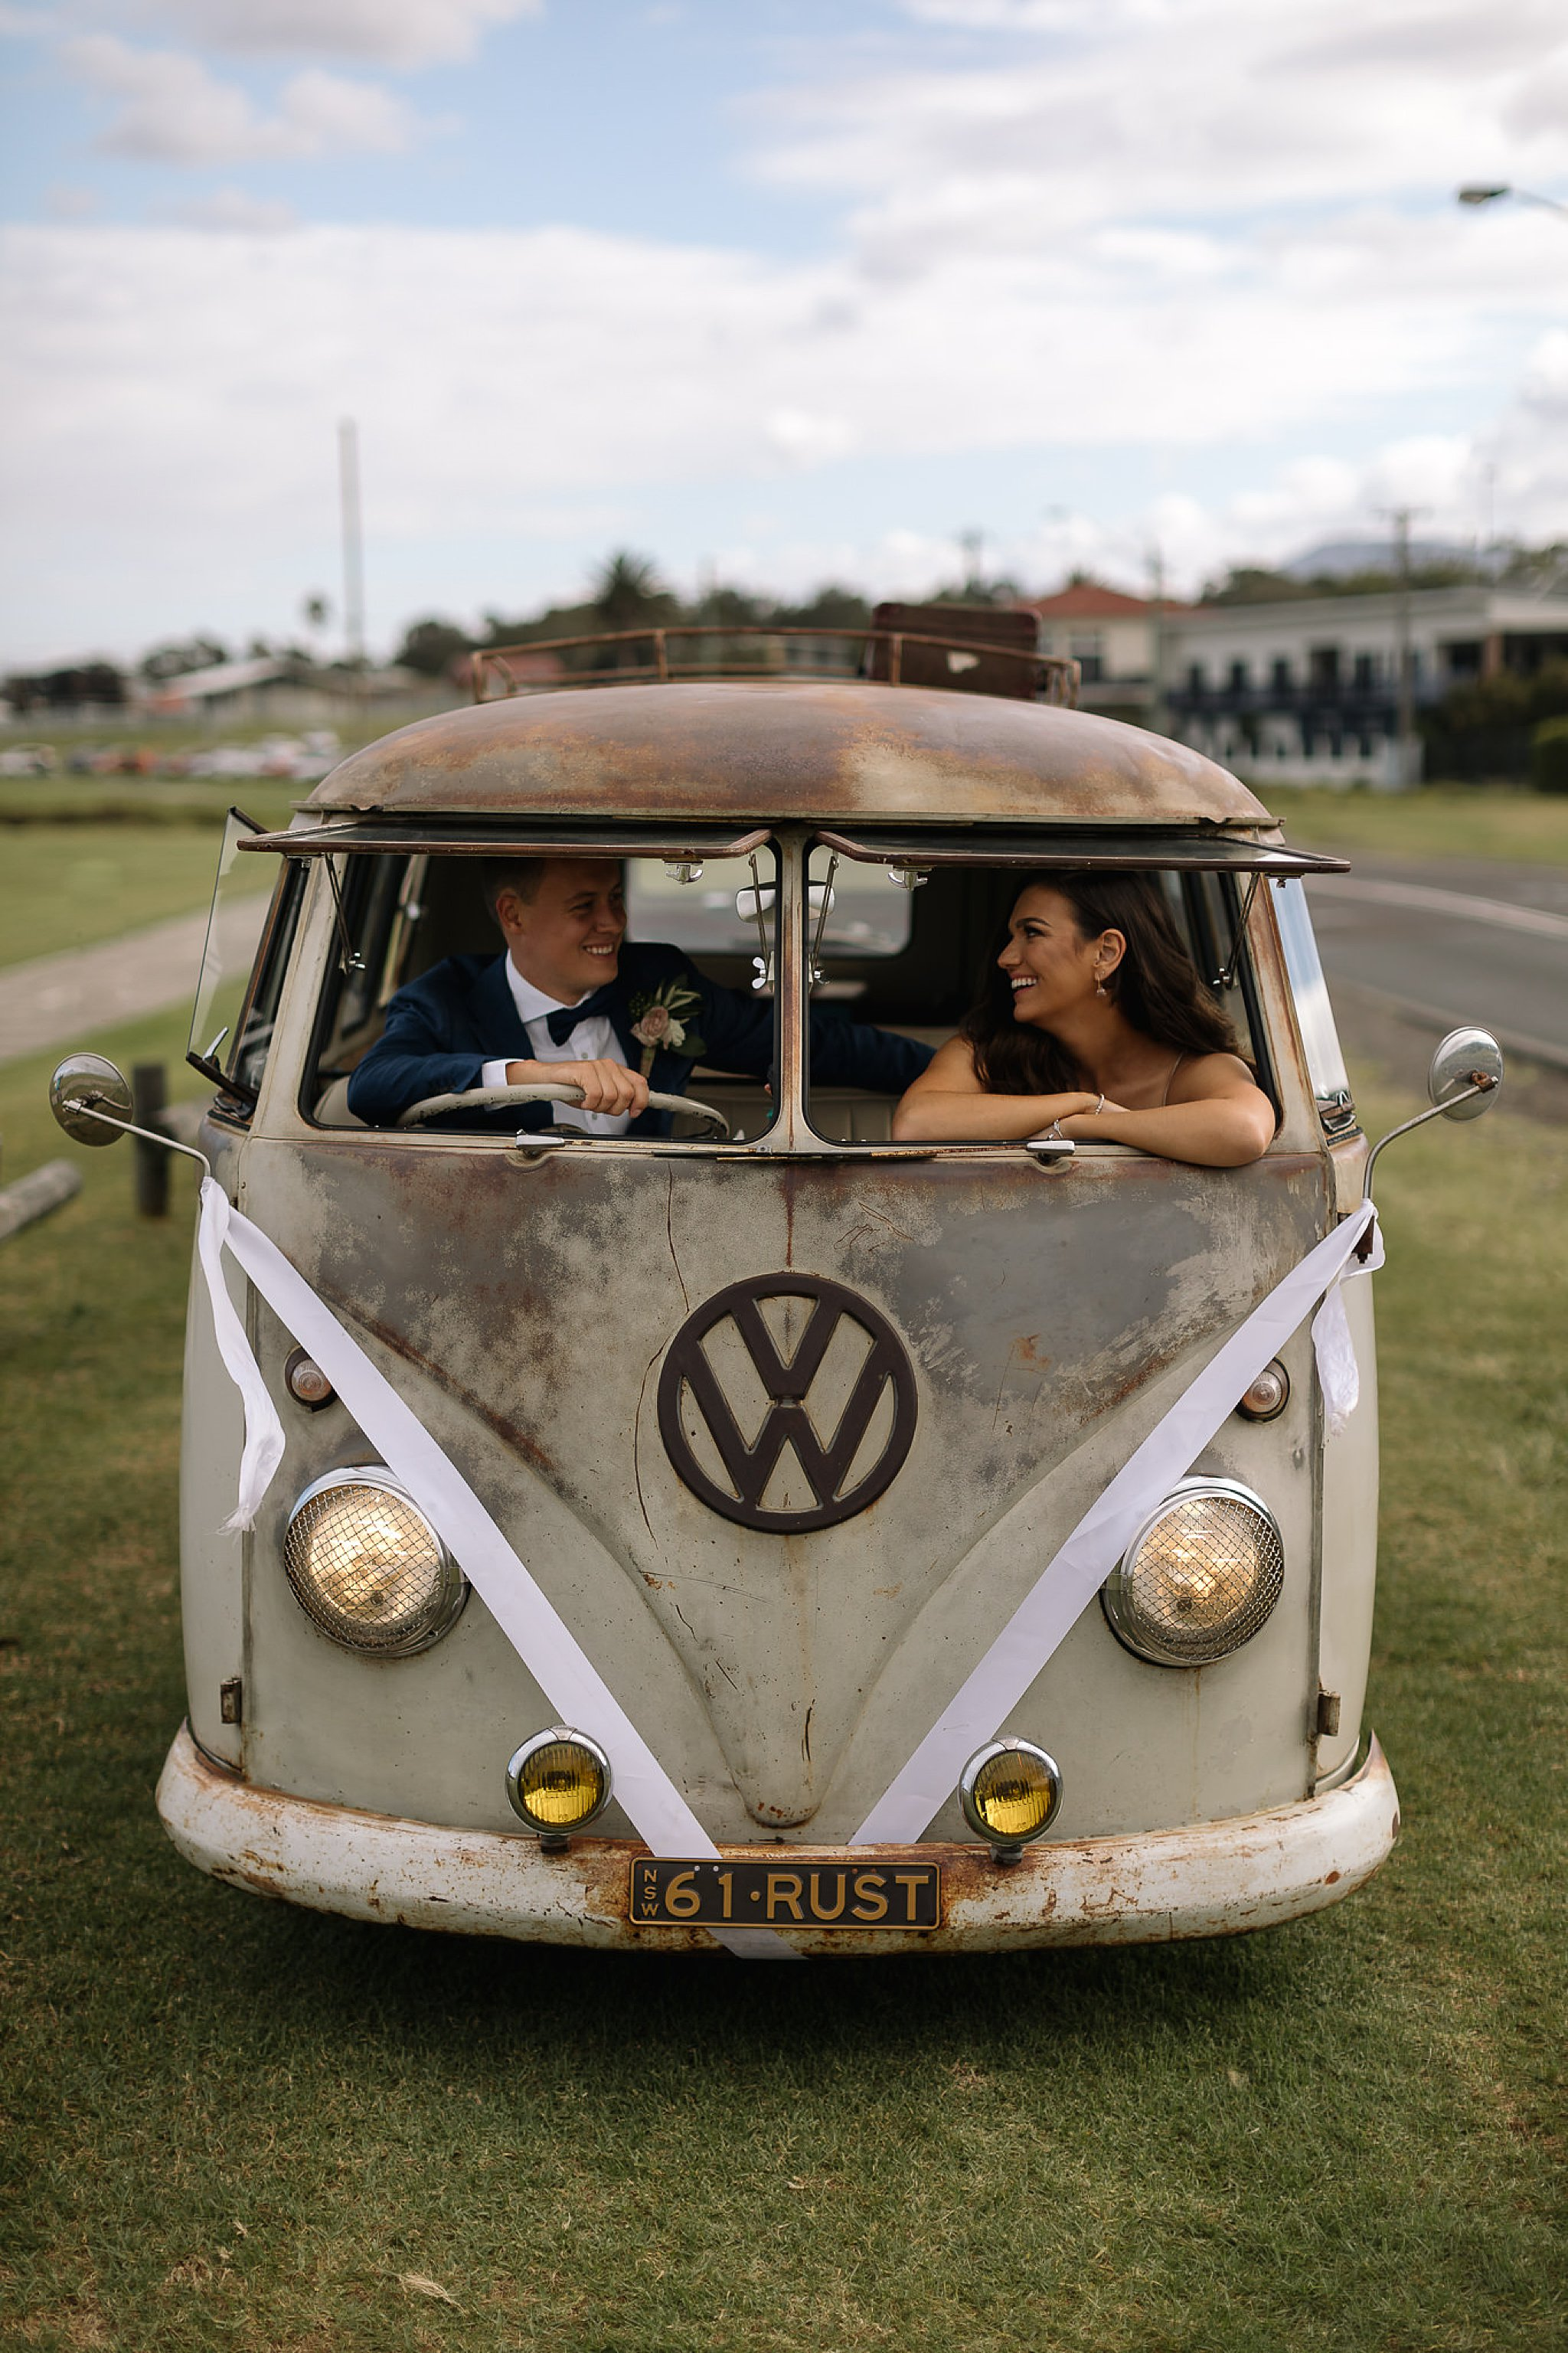 ACT wedding photographer,ACT weddings,canberra wedding,Canberra Wedding Photographer,Canberra Wedding Photography,Beach wedding,Novotel Wollongong Wedding,Wollongong Wedding Photographer,